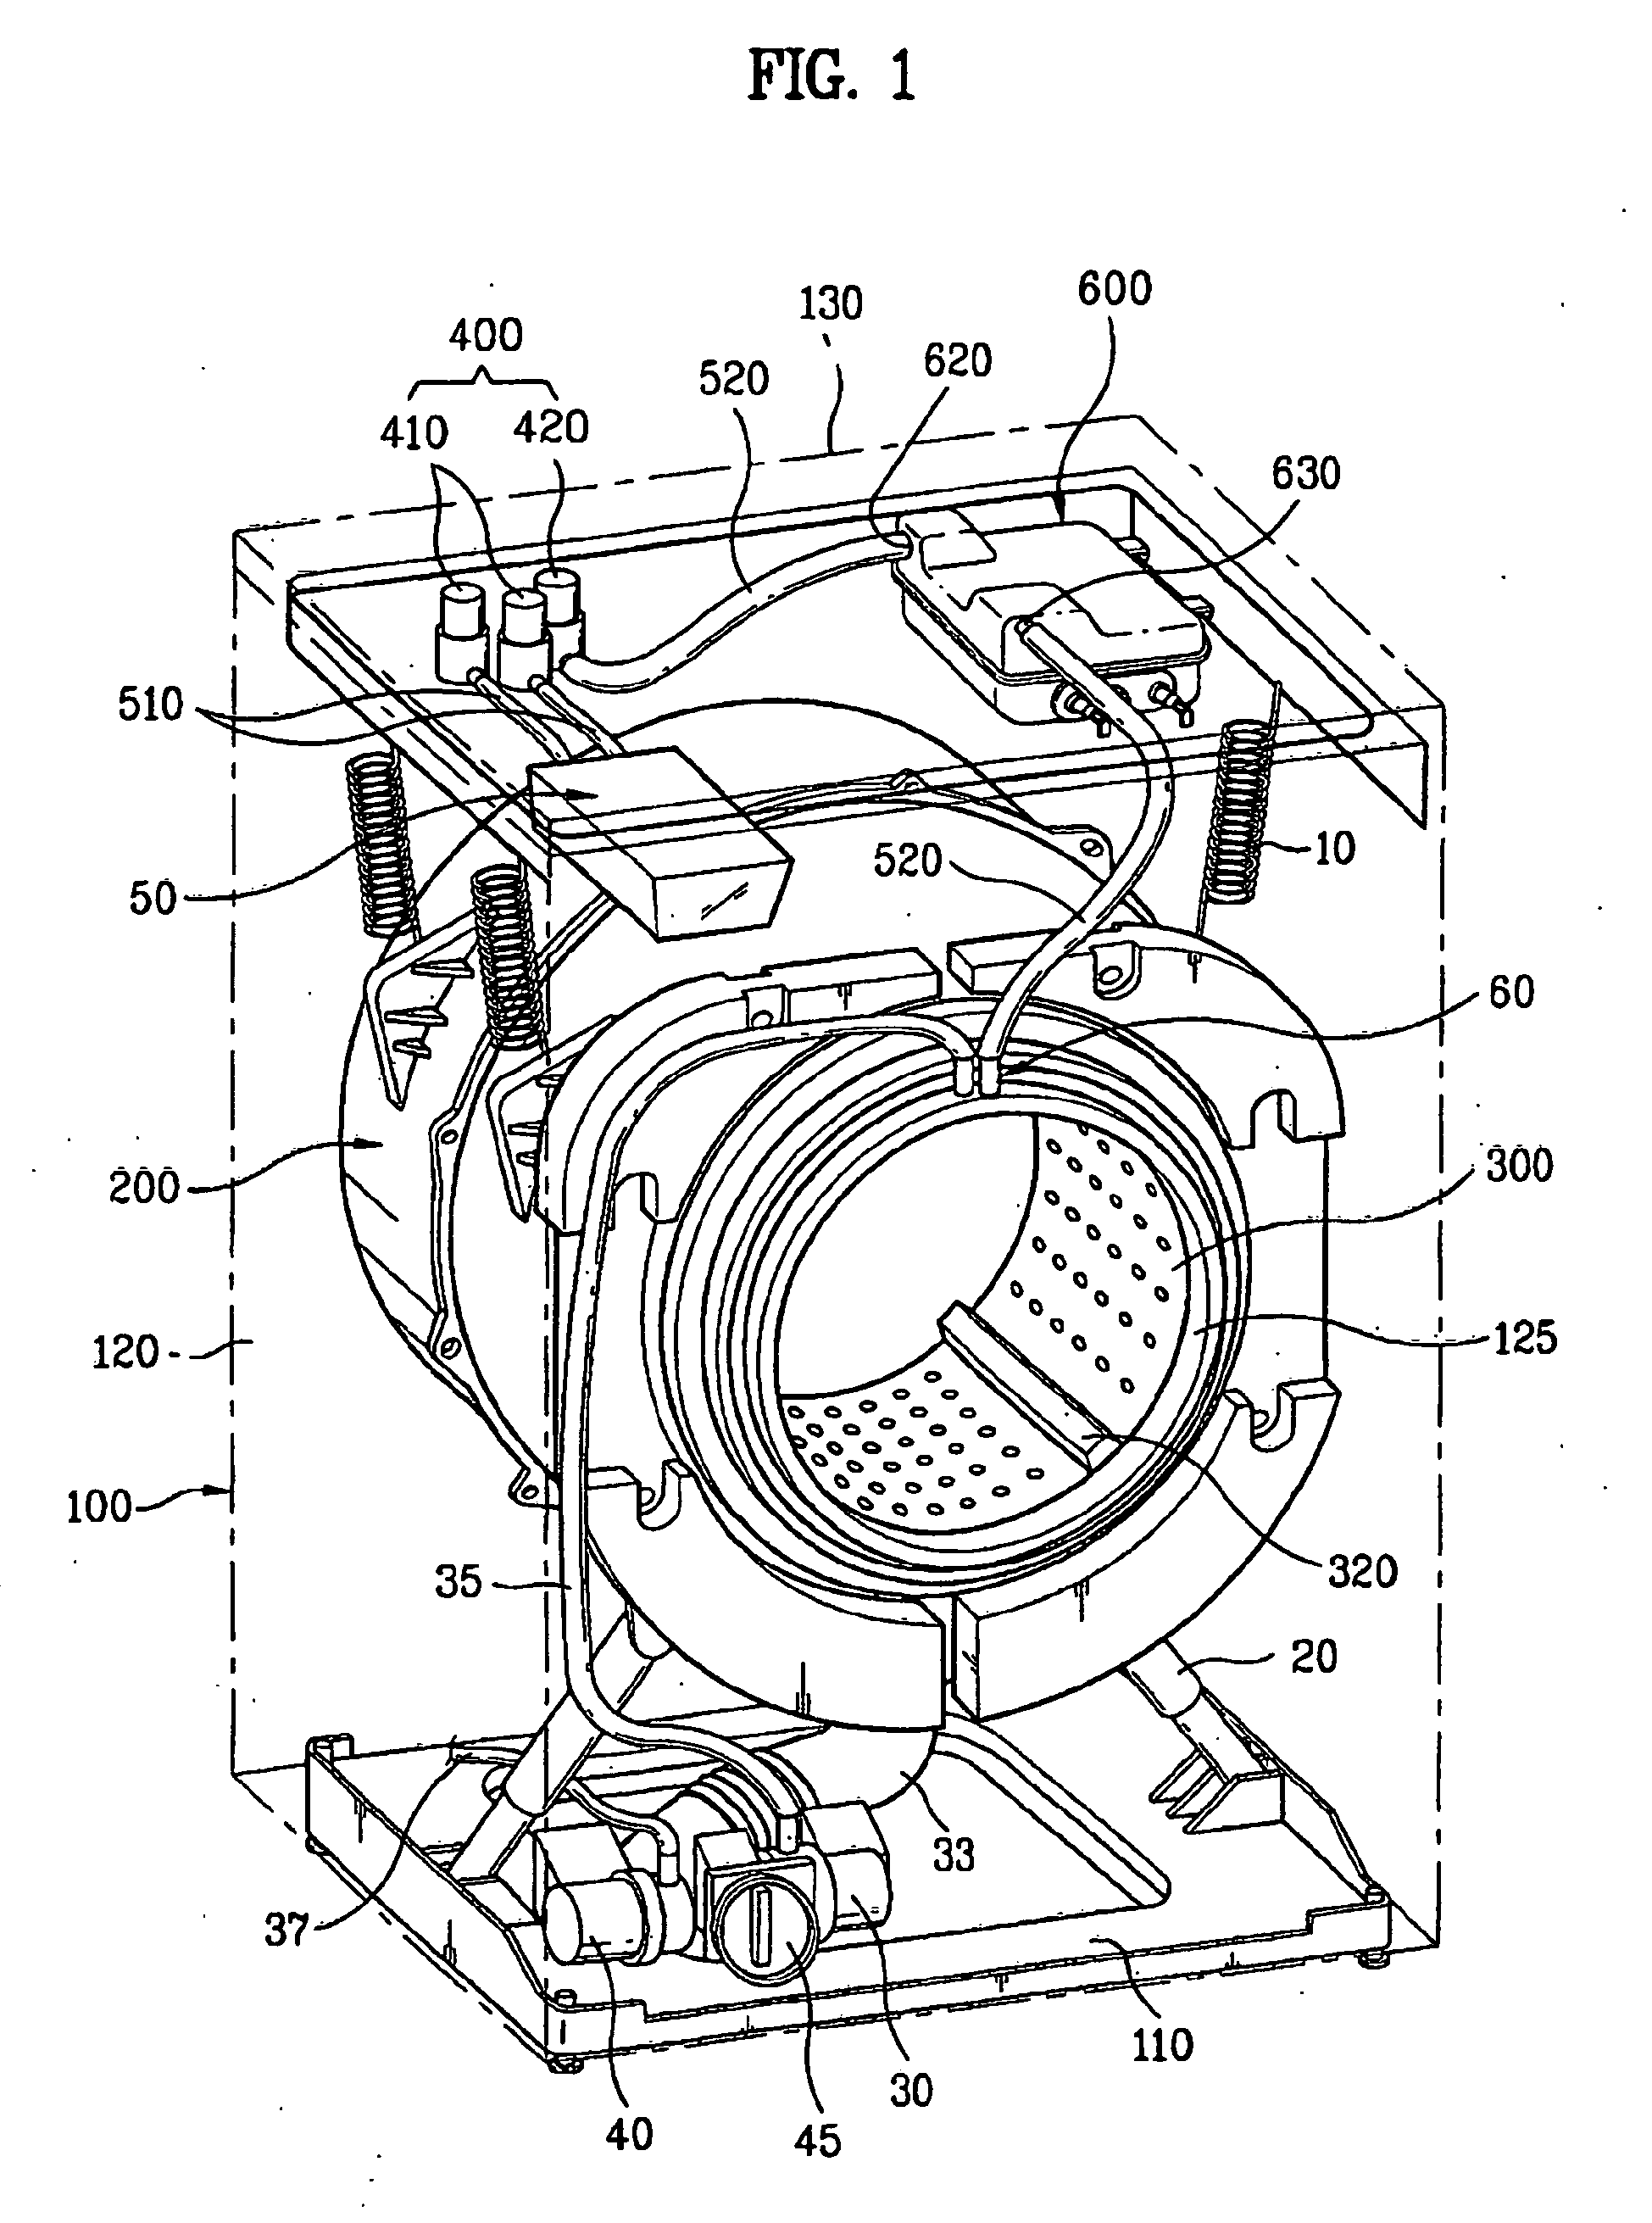 LG Front Load Washer Parts Diagram further LG Washer Parts Diagram in addition Lg Washing Machine Parts Diagram as well LG Front Load Washer Parts Diagram additionally Diagram Ref Lg Wm12225fd Rubber Cap Genuine Accessory Suitable For Lg. on lg washing machine parts diagram